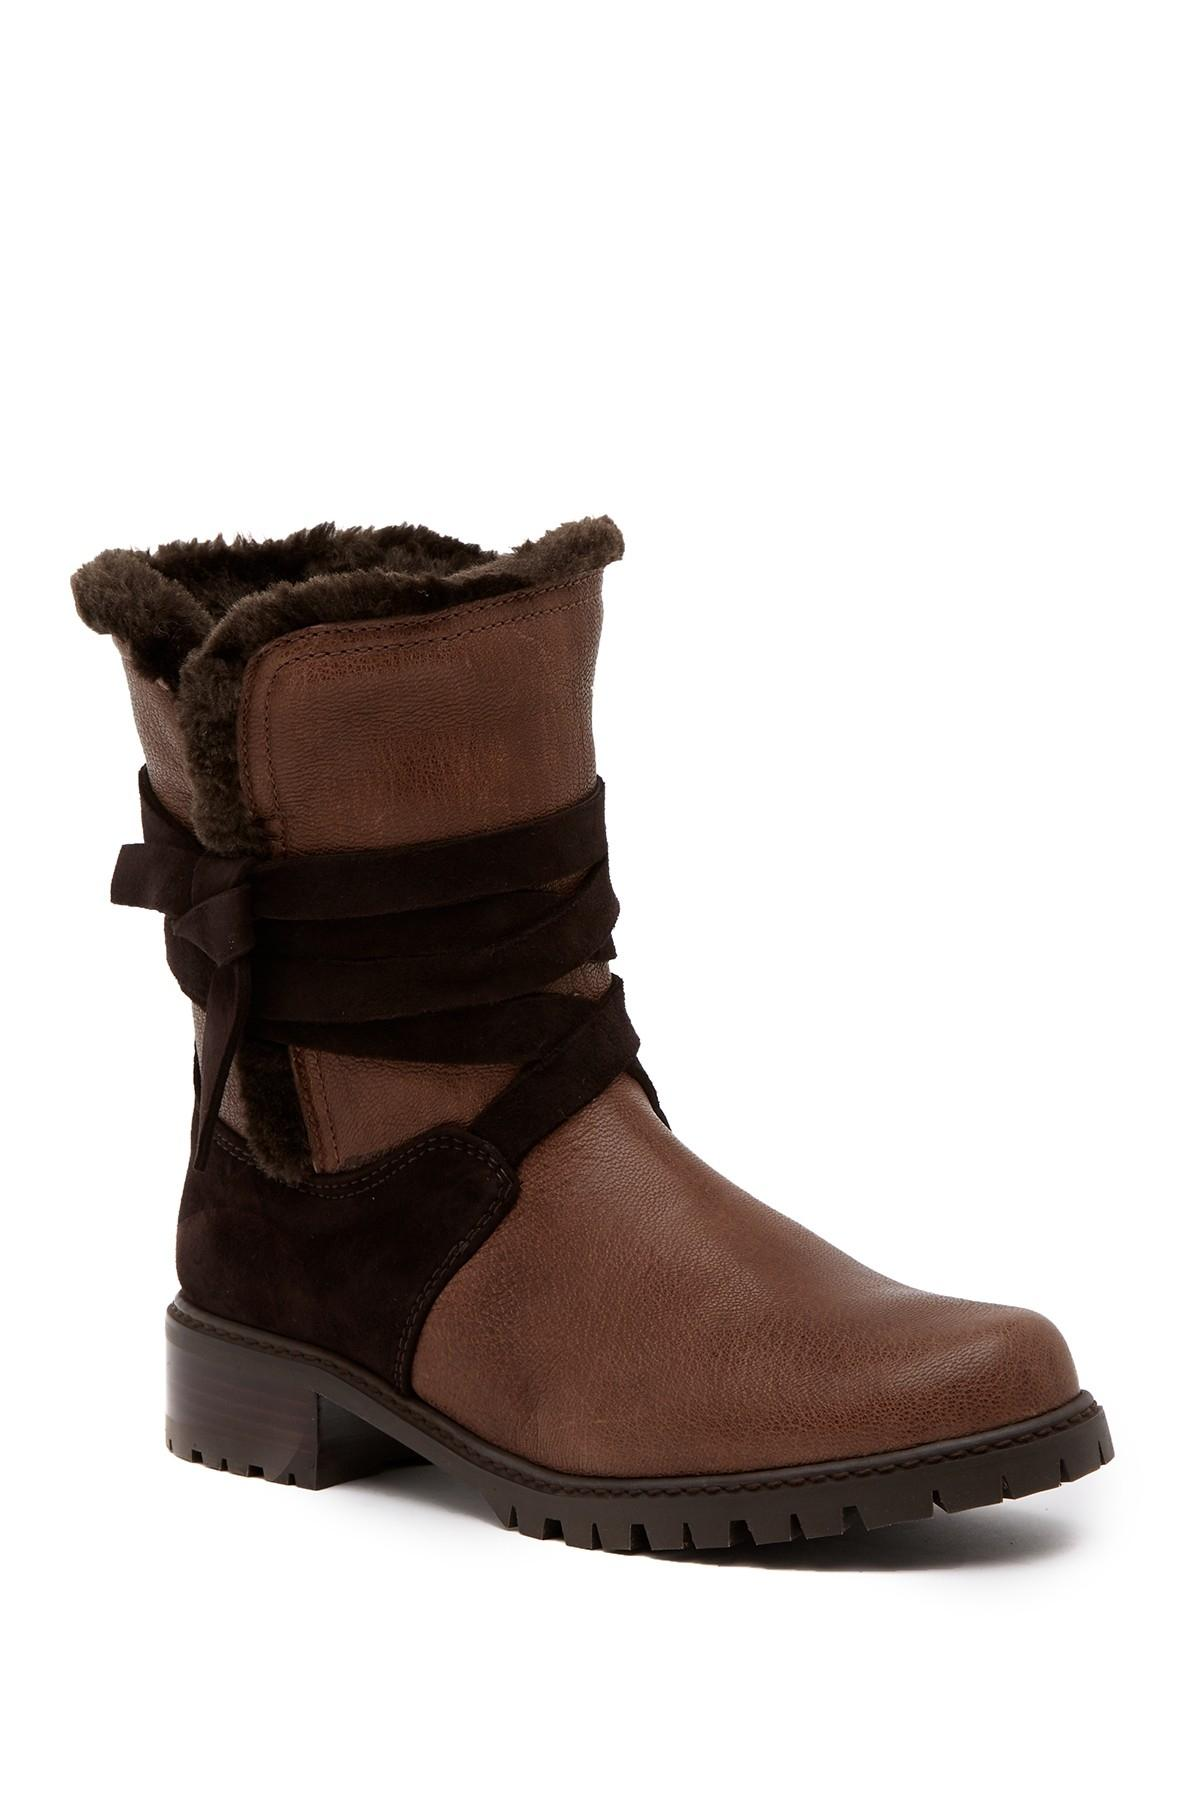 Stuart Weitzman Rumind Snowfield Faux Shearling Ankle (K1) Boots/Booties Size US 11 Regular (M, B)